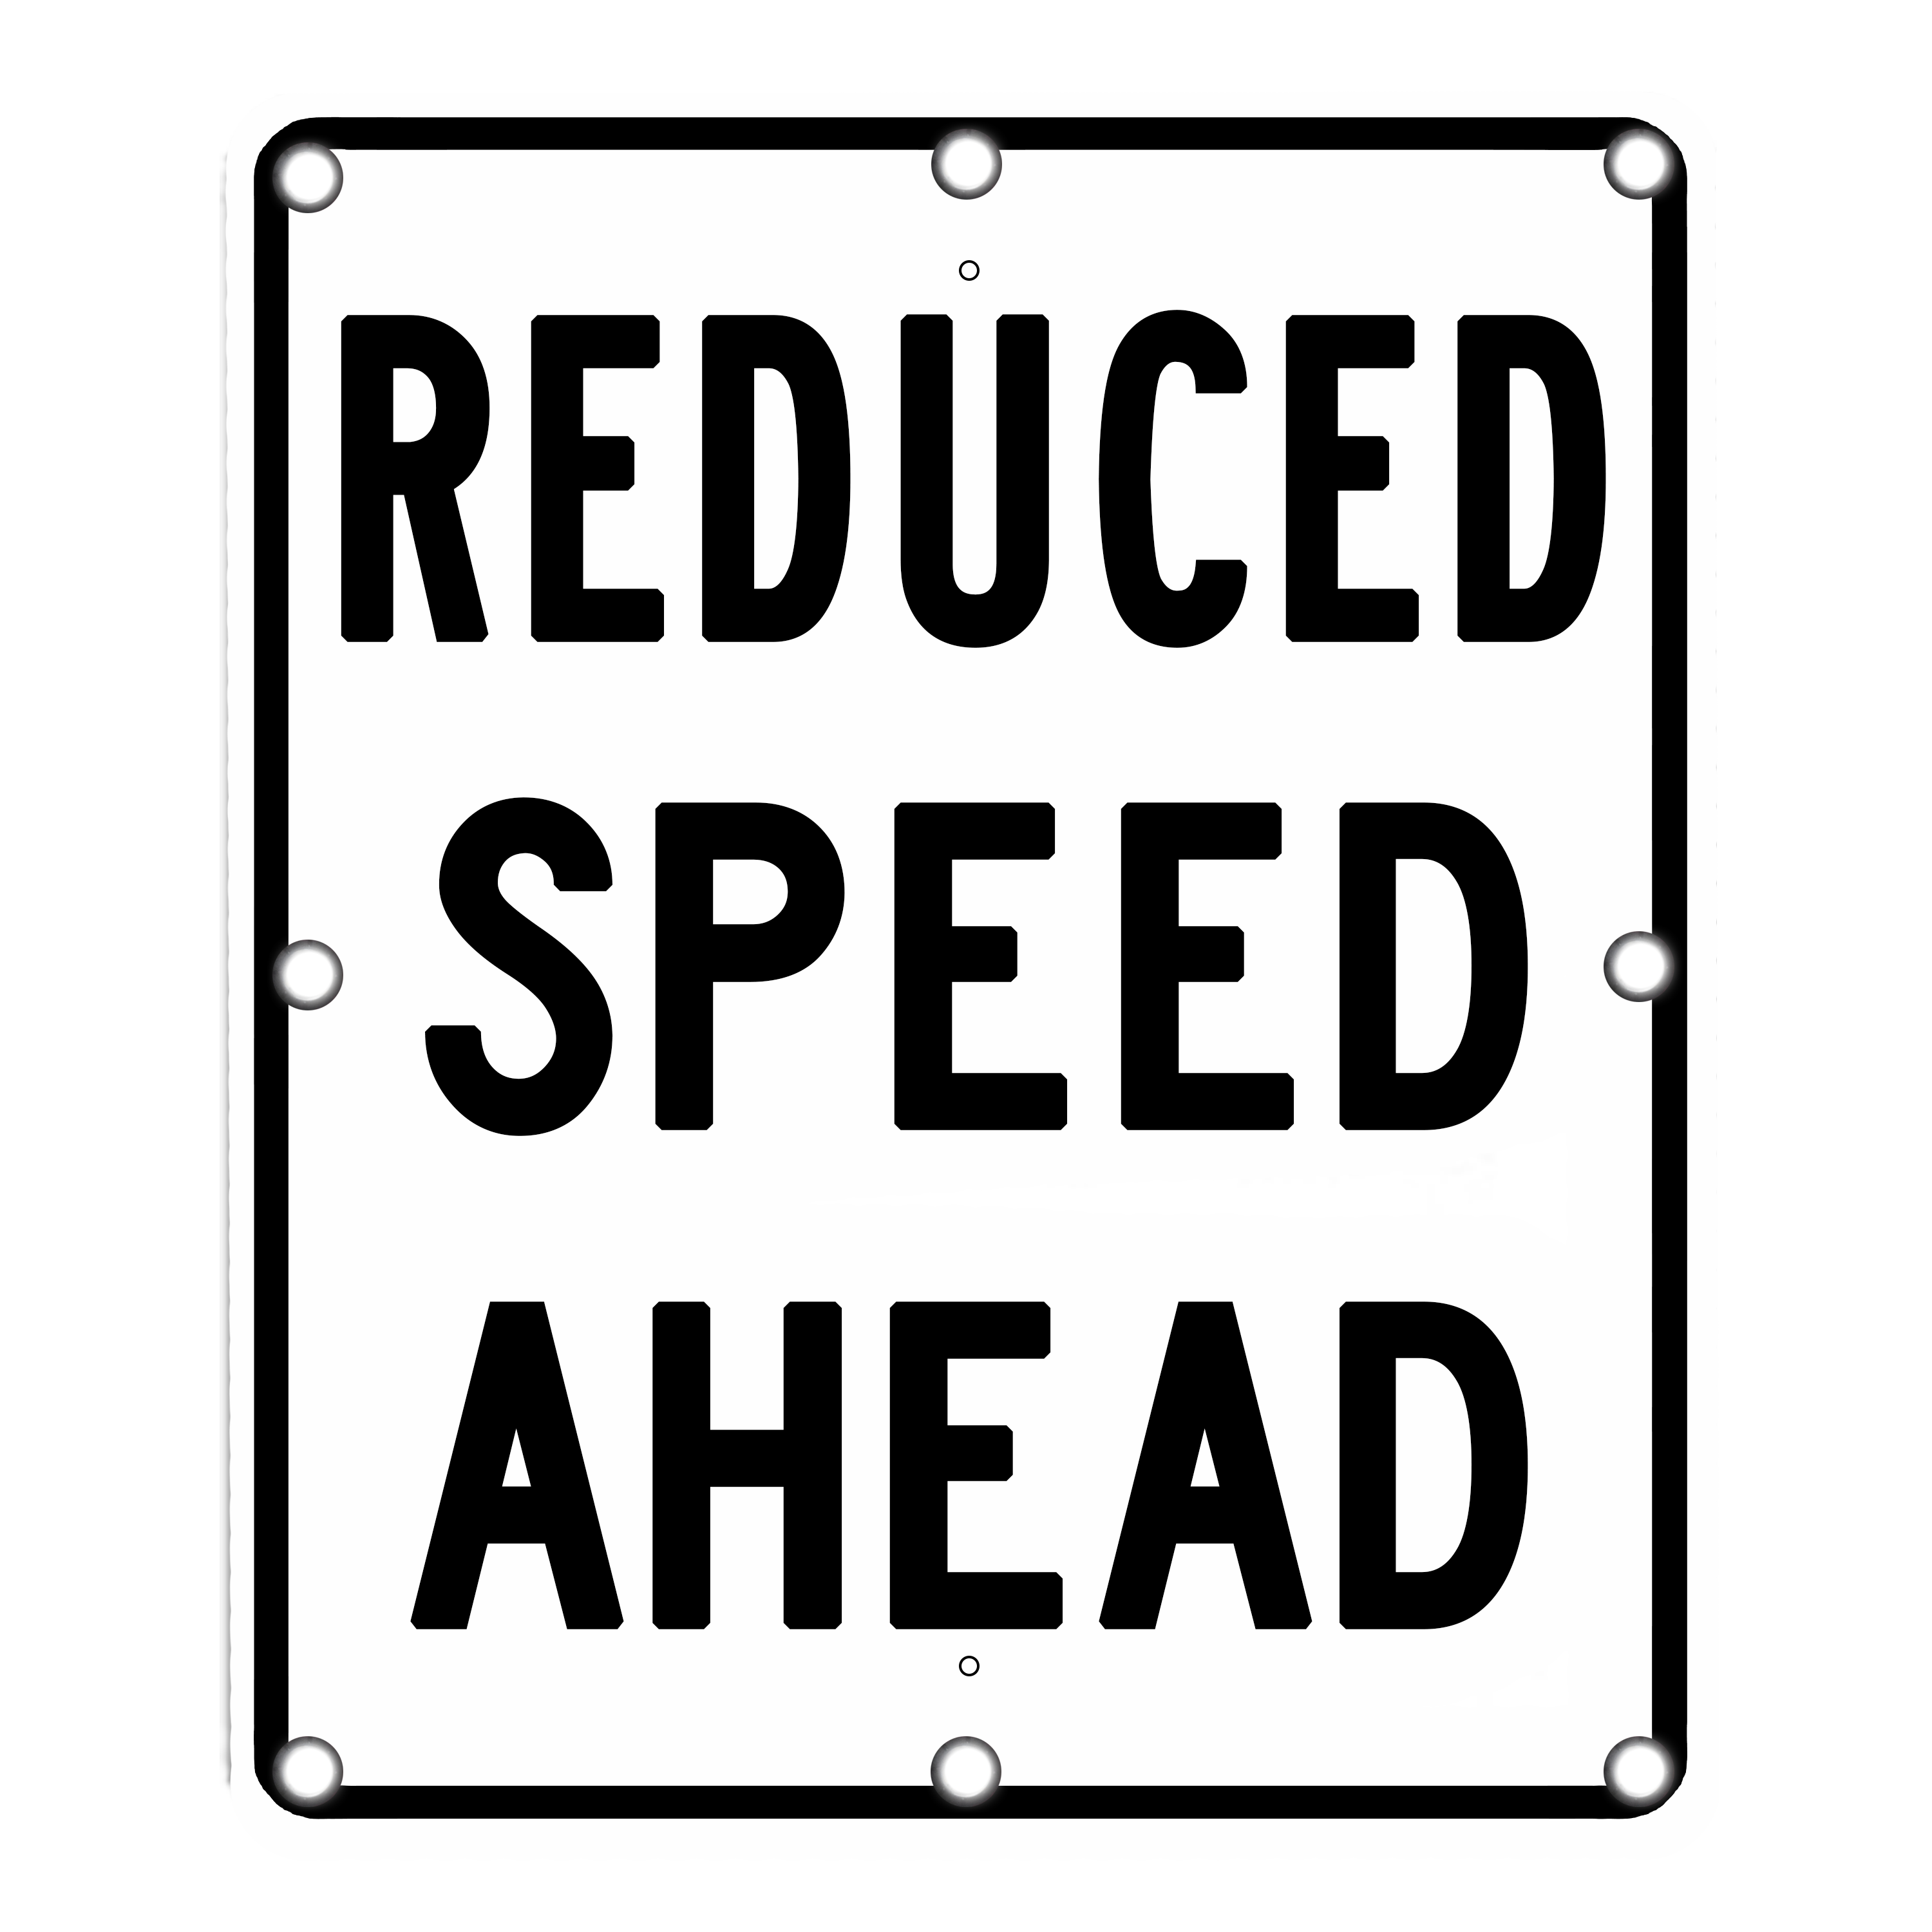 Image logo for Lighted Roadway Signs -  REDUCE SPEED AHEAD sign